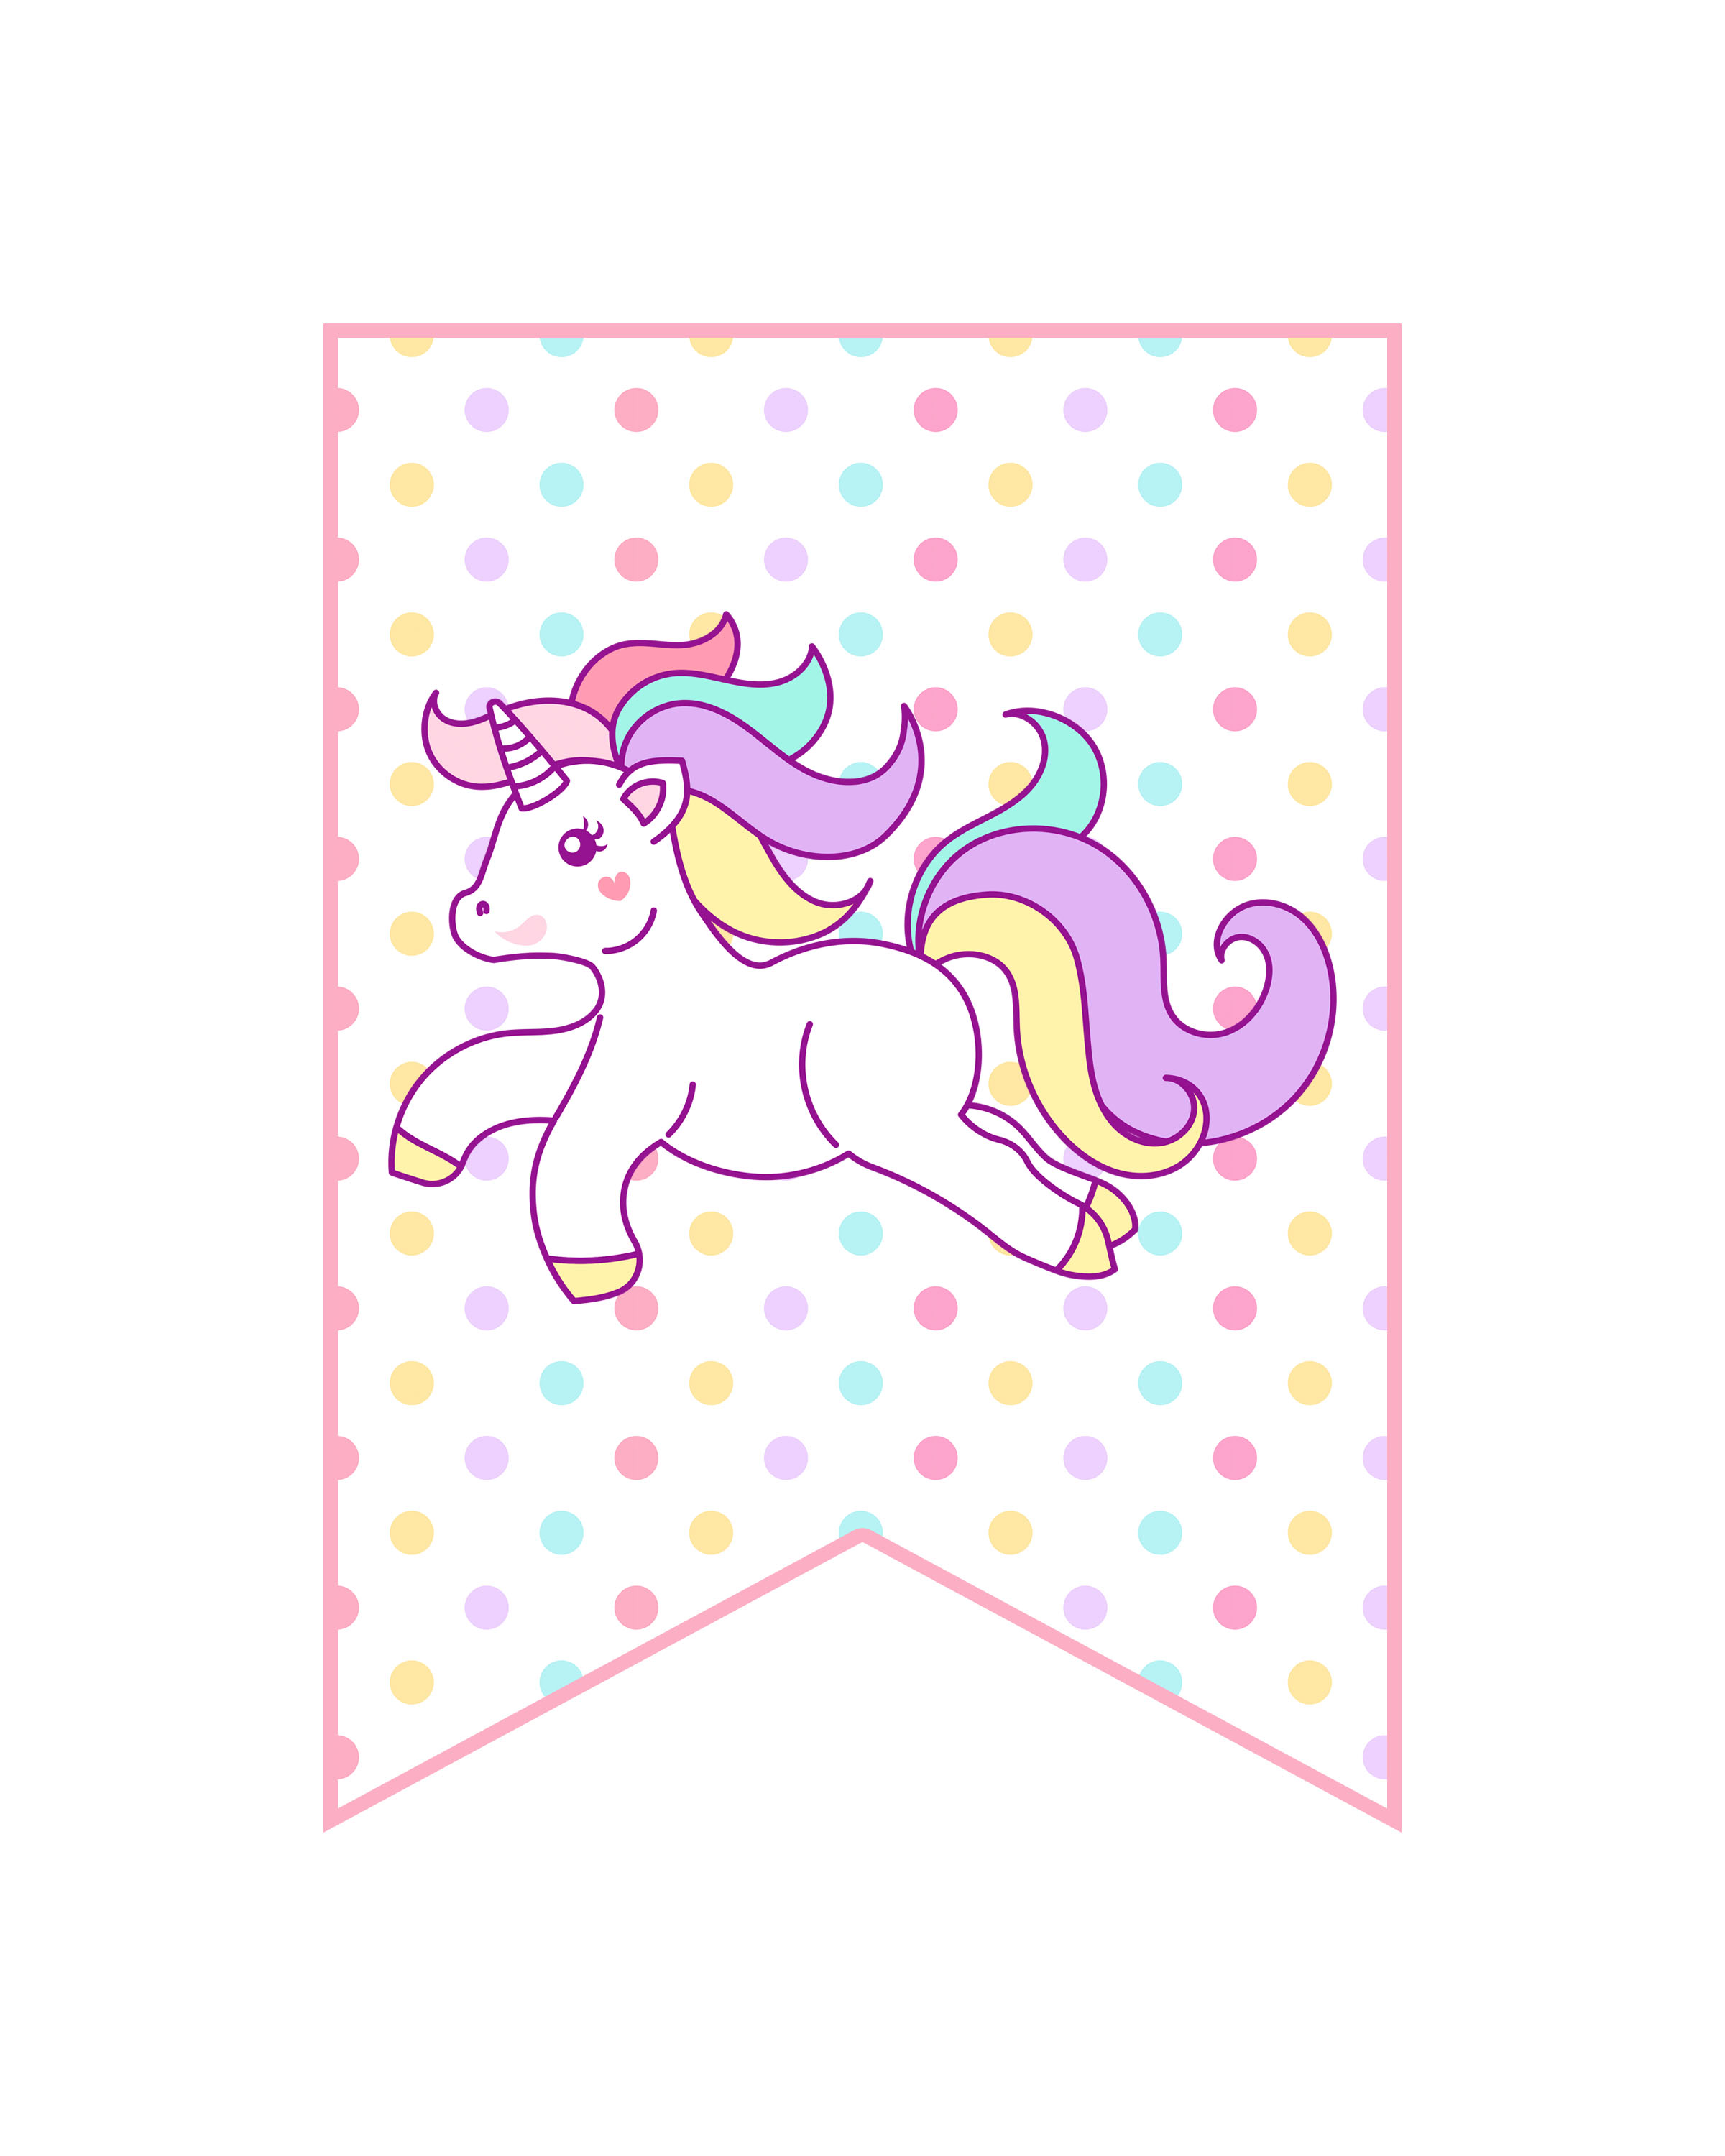 photo relating to Free Printable Unicorn called Cost-free Printable Unicorn Celebration Decorations Pack - The Cottage